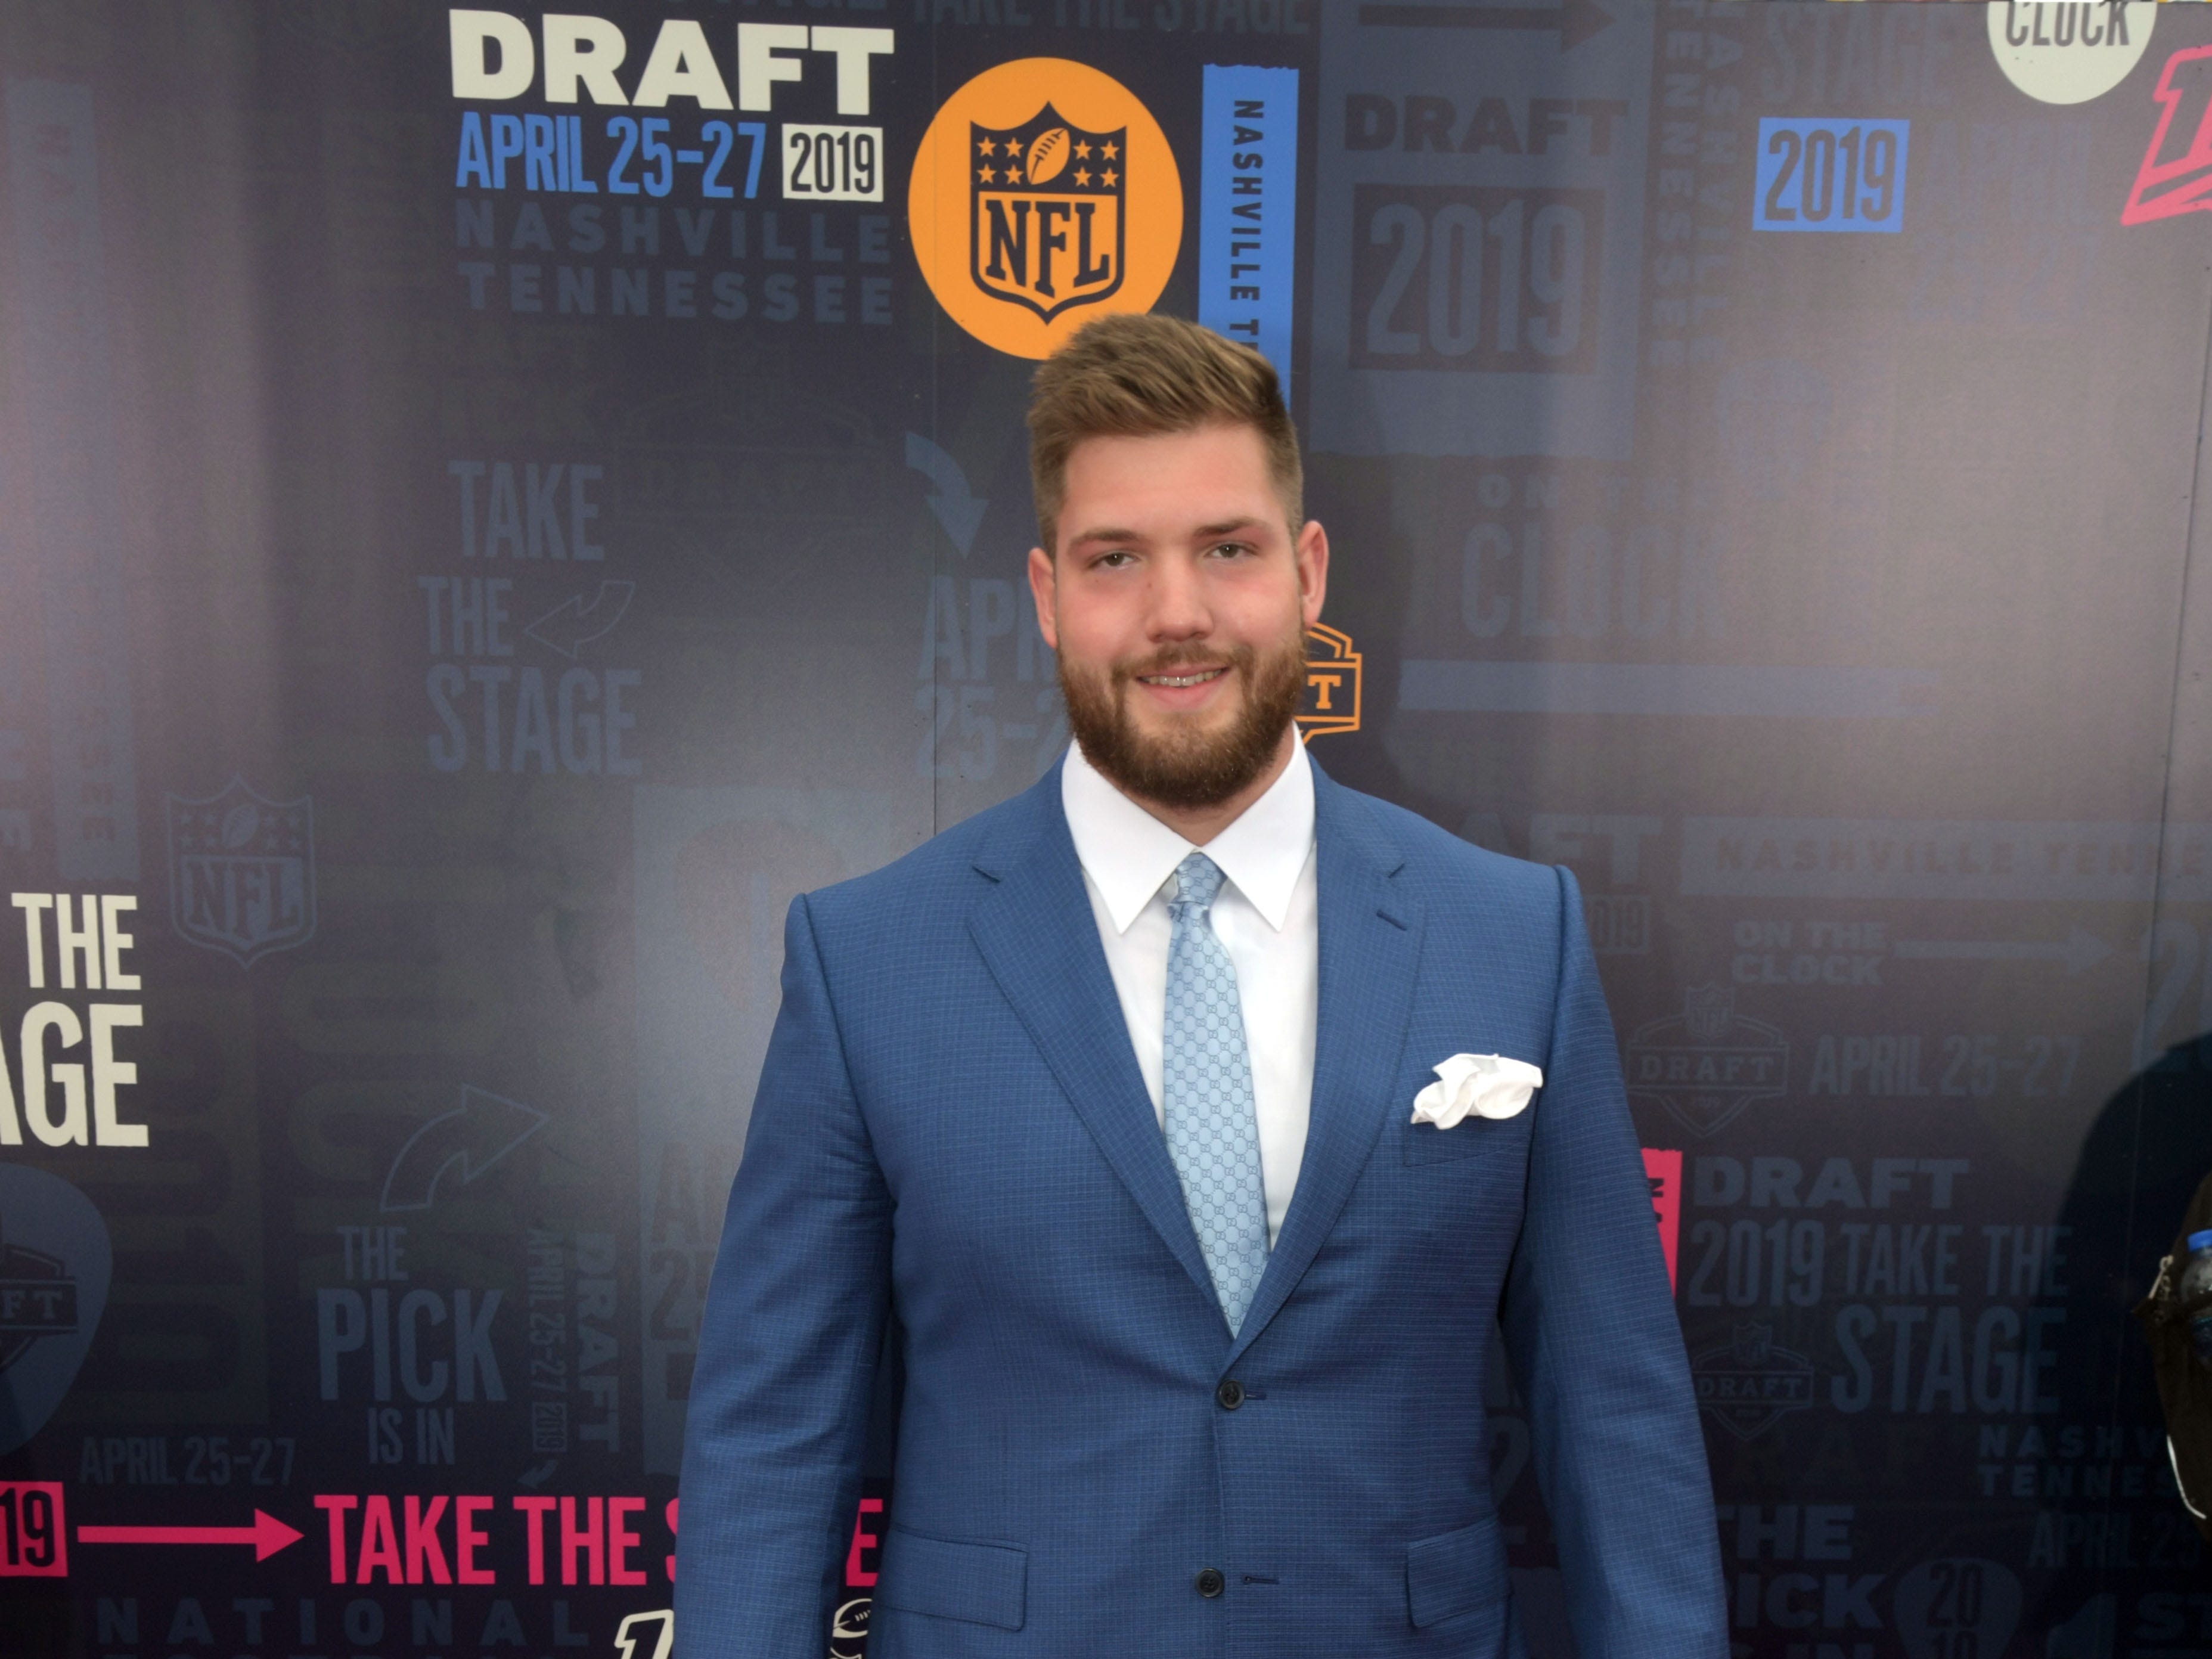 Apr 25, 2019; Nashville, TN, USA; Jonah Williams (Alabama) on the red carpet prior to the first round of the 2019 NFL Draft in Downtown Nashville. Mandatory Credit: Kirby Lee-USA TODAY Sports